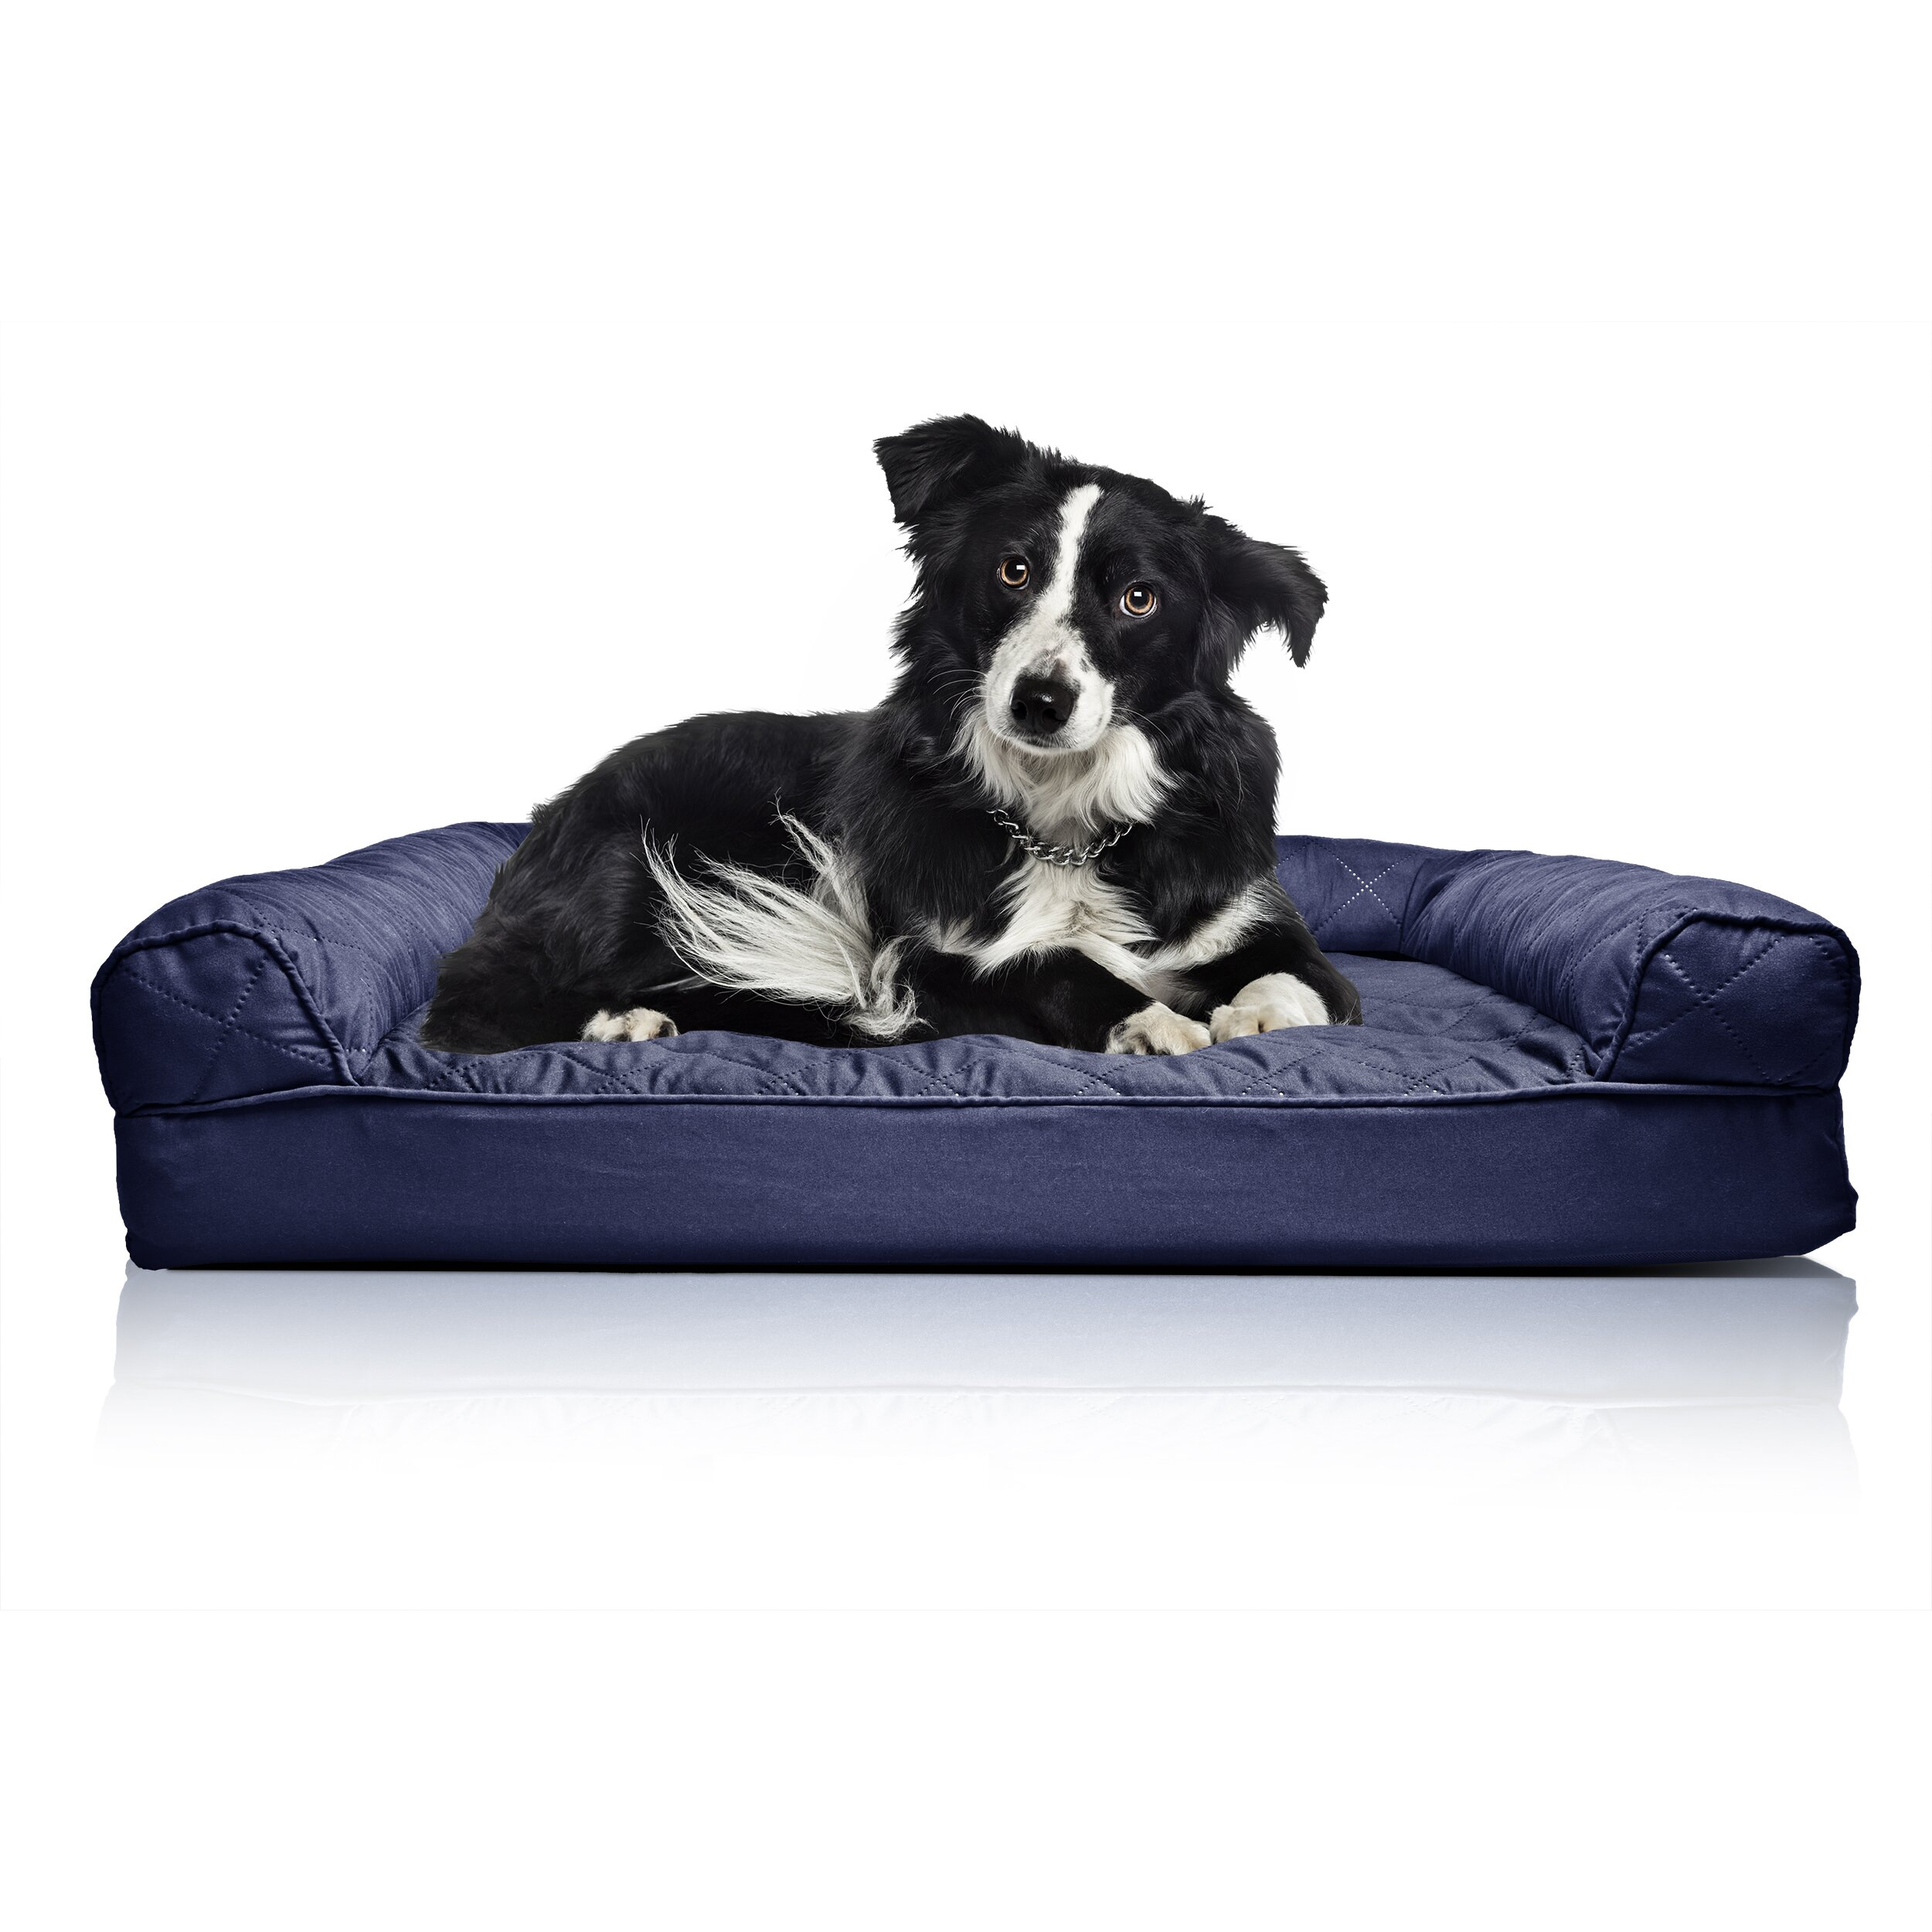 Zoey Tails Quilted Orthopedic Sofa Style Dog Bed amp Reviews  : Zoey Tails Quilted Orthopedic Sofa Style Dog Bed from www.wayfair.com size 2500 x 2500 jpeg 609kB